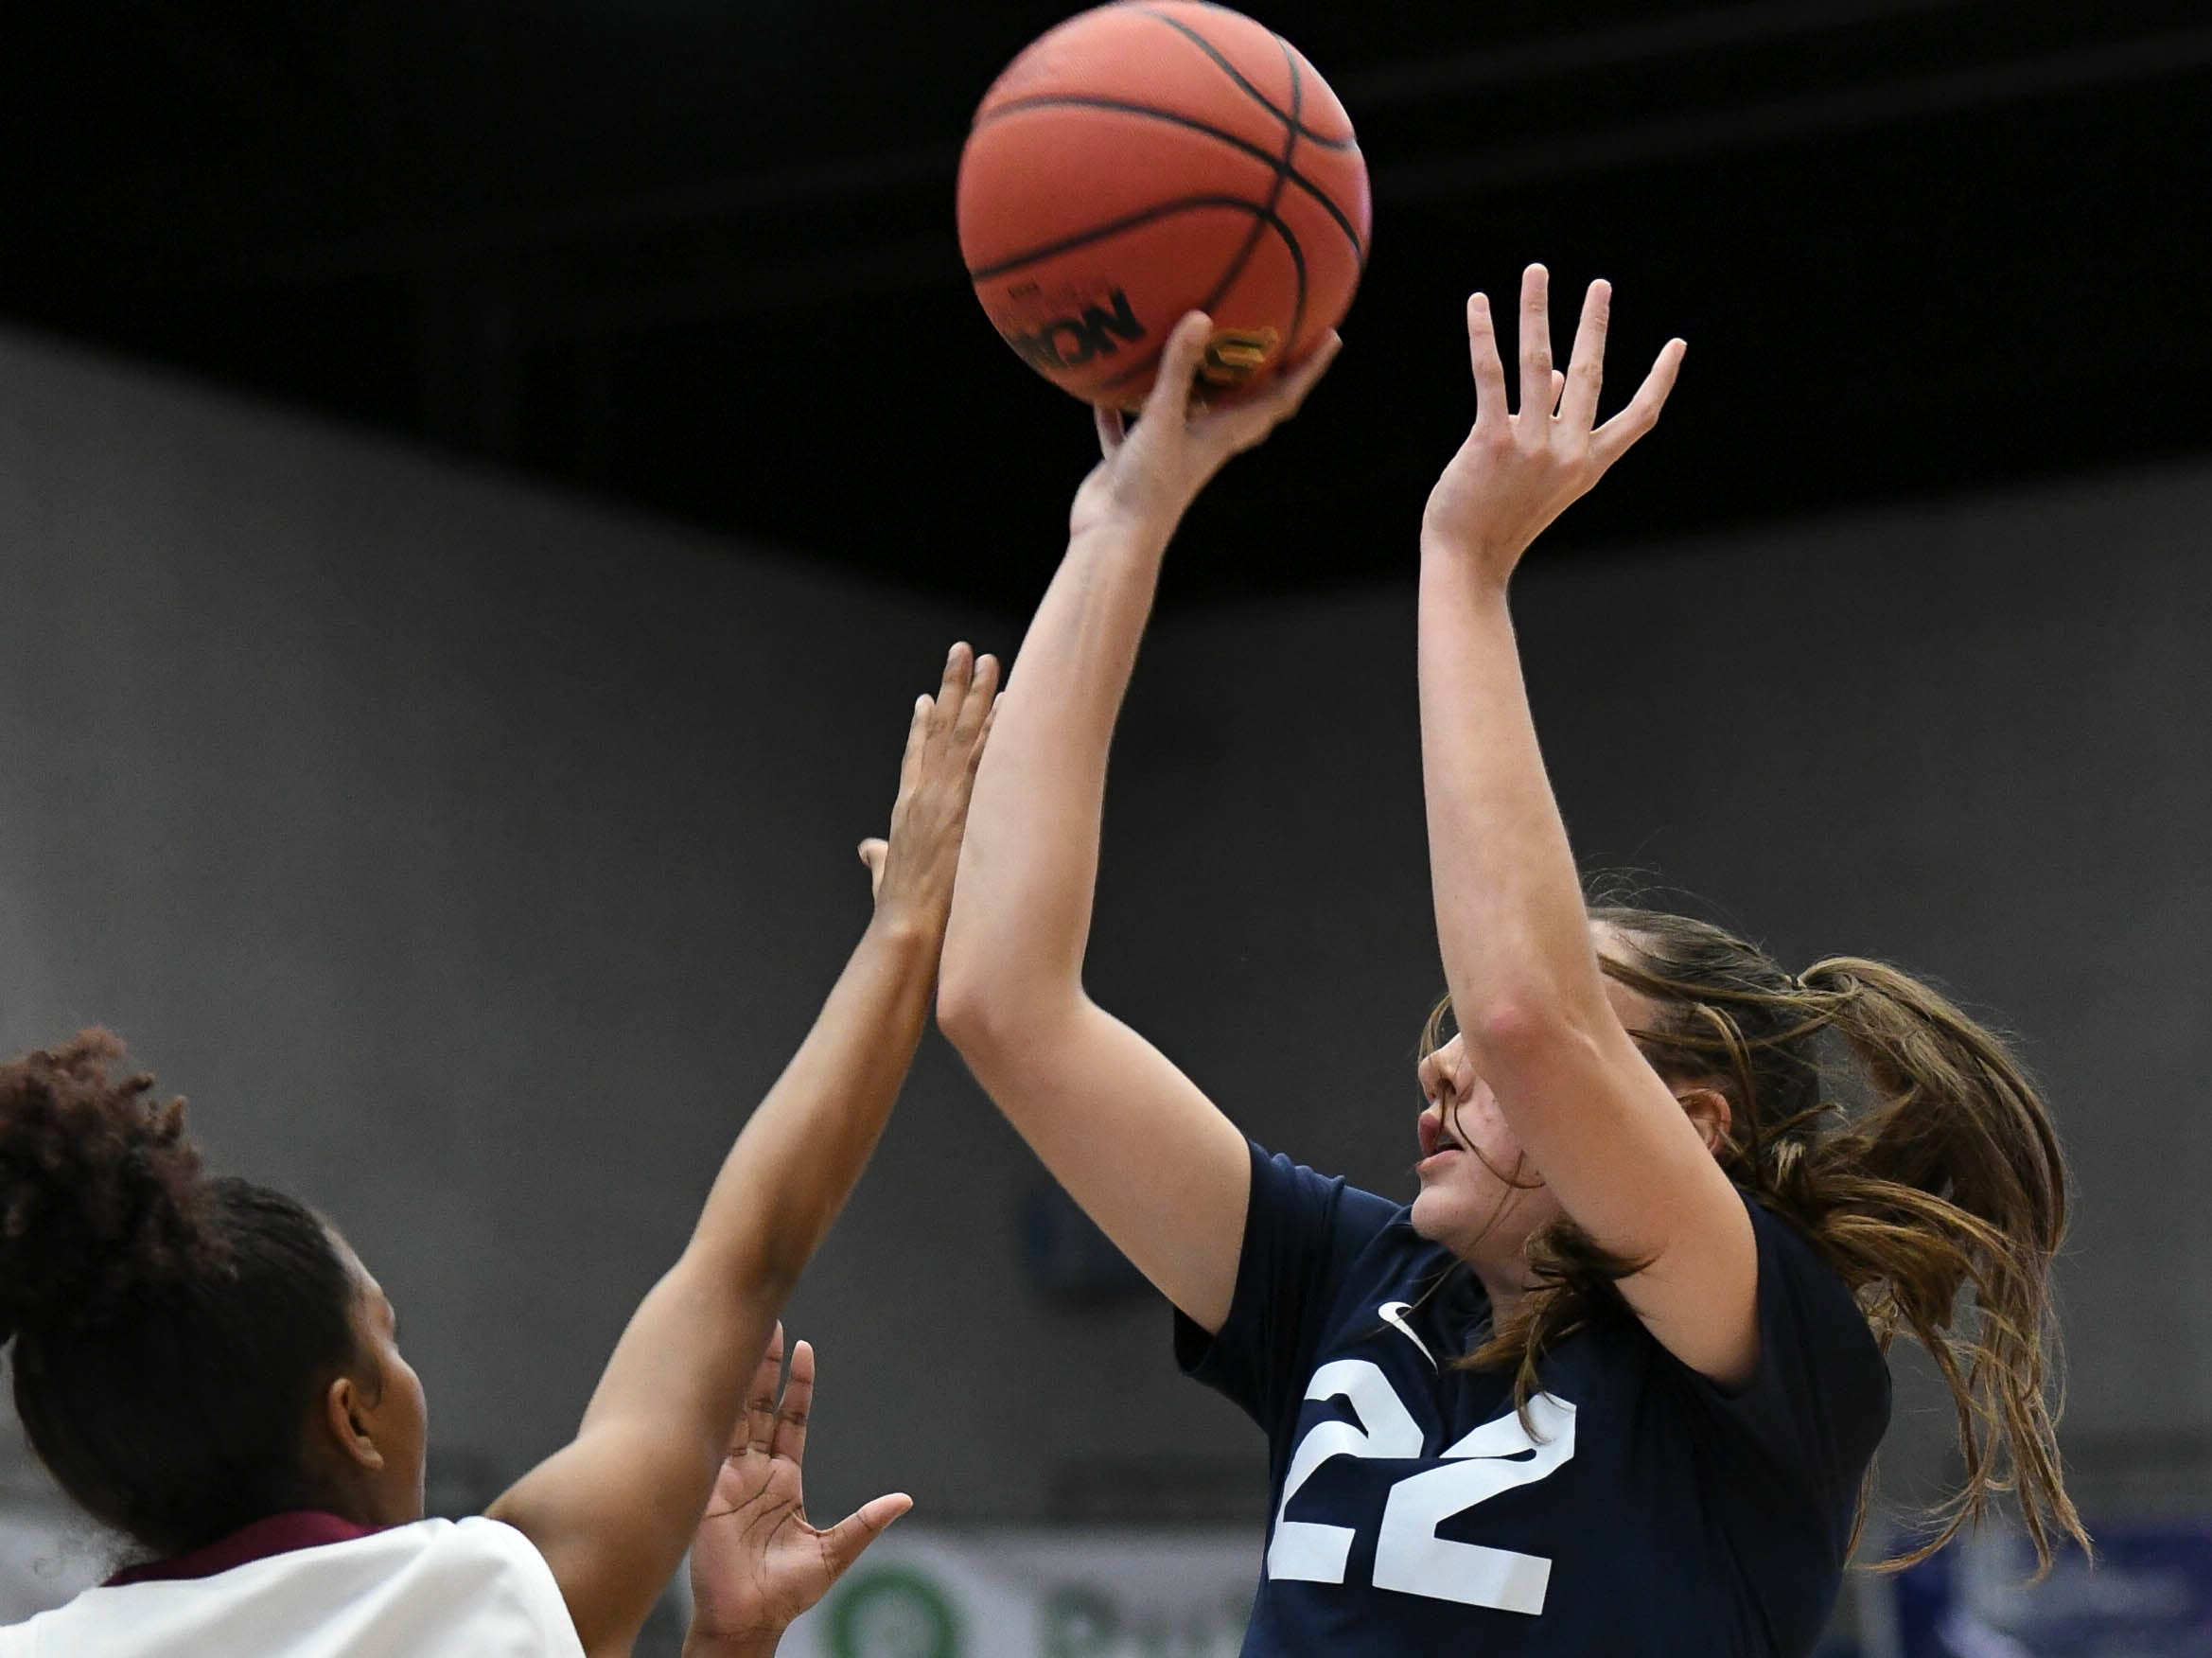 Aleah Sorrentino of Florida Prep shoots over Sierra Bell of Bayshore Christian during Tuesday's Class 2A state championship game.